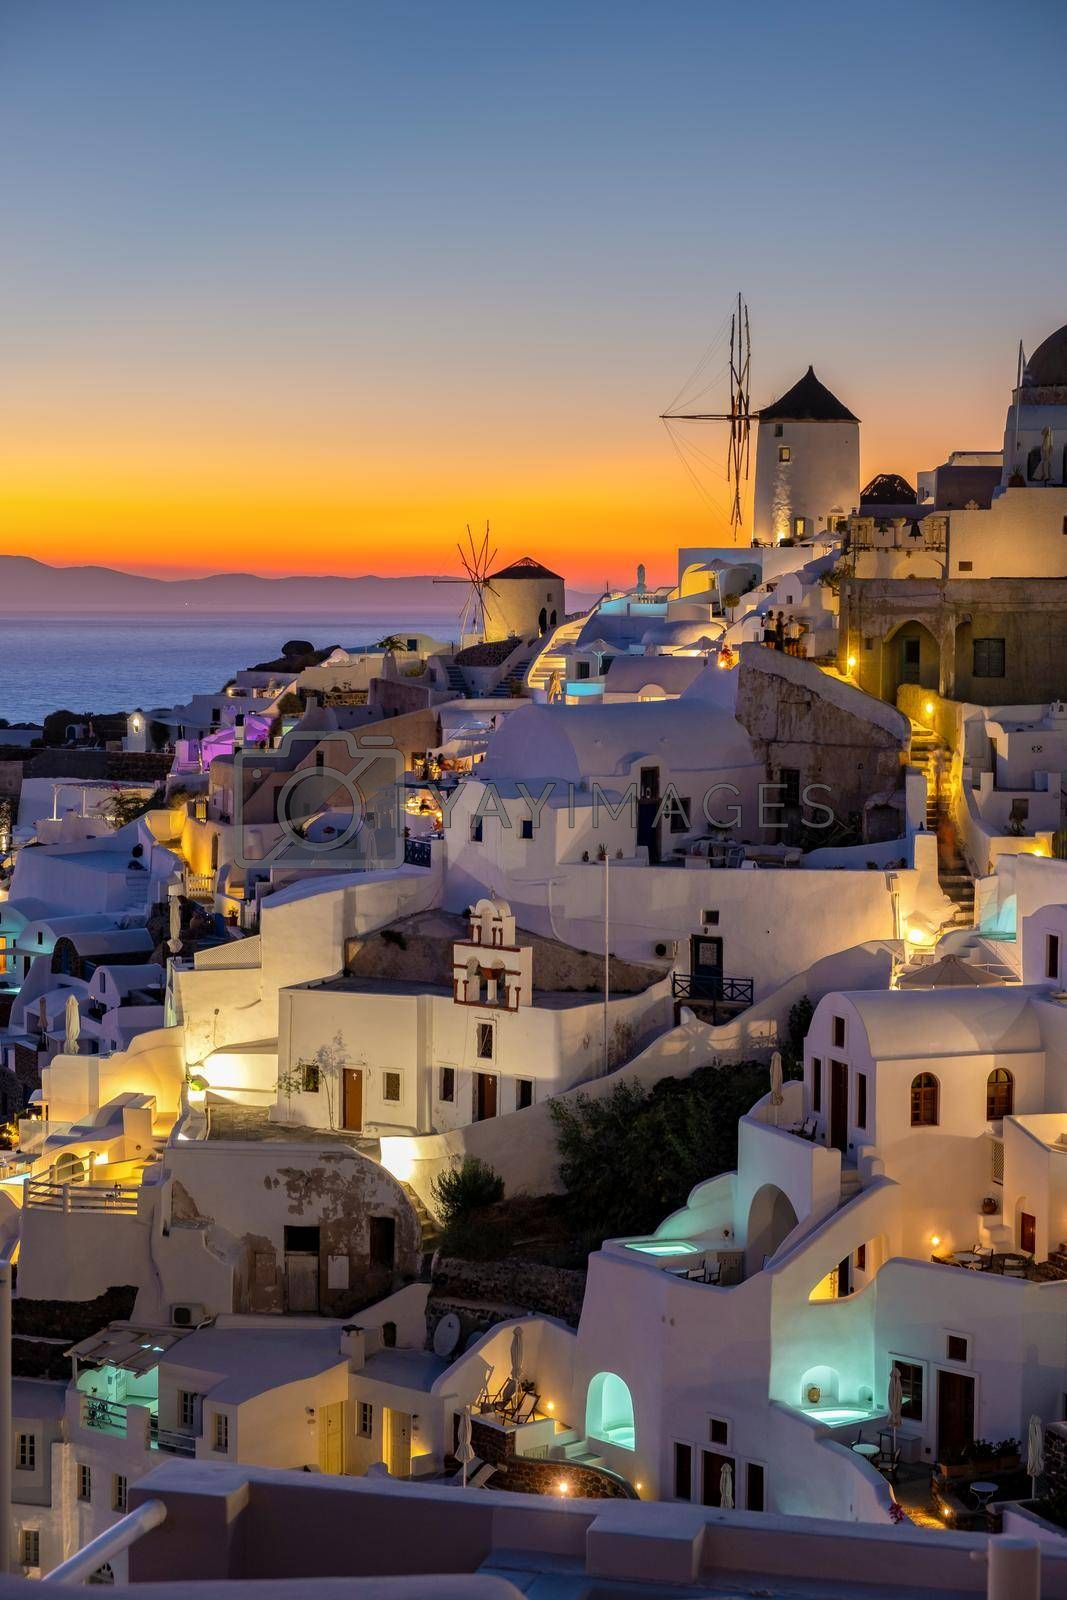 Sunset at the Island Of Santorini Greece, beautiful whitewashed village Oia with church and windmill during sunset, streets of Oia Santorini during summer vacation at the Greek Island